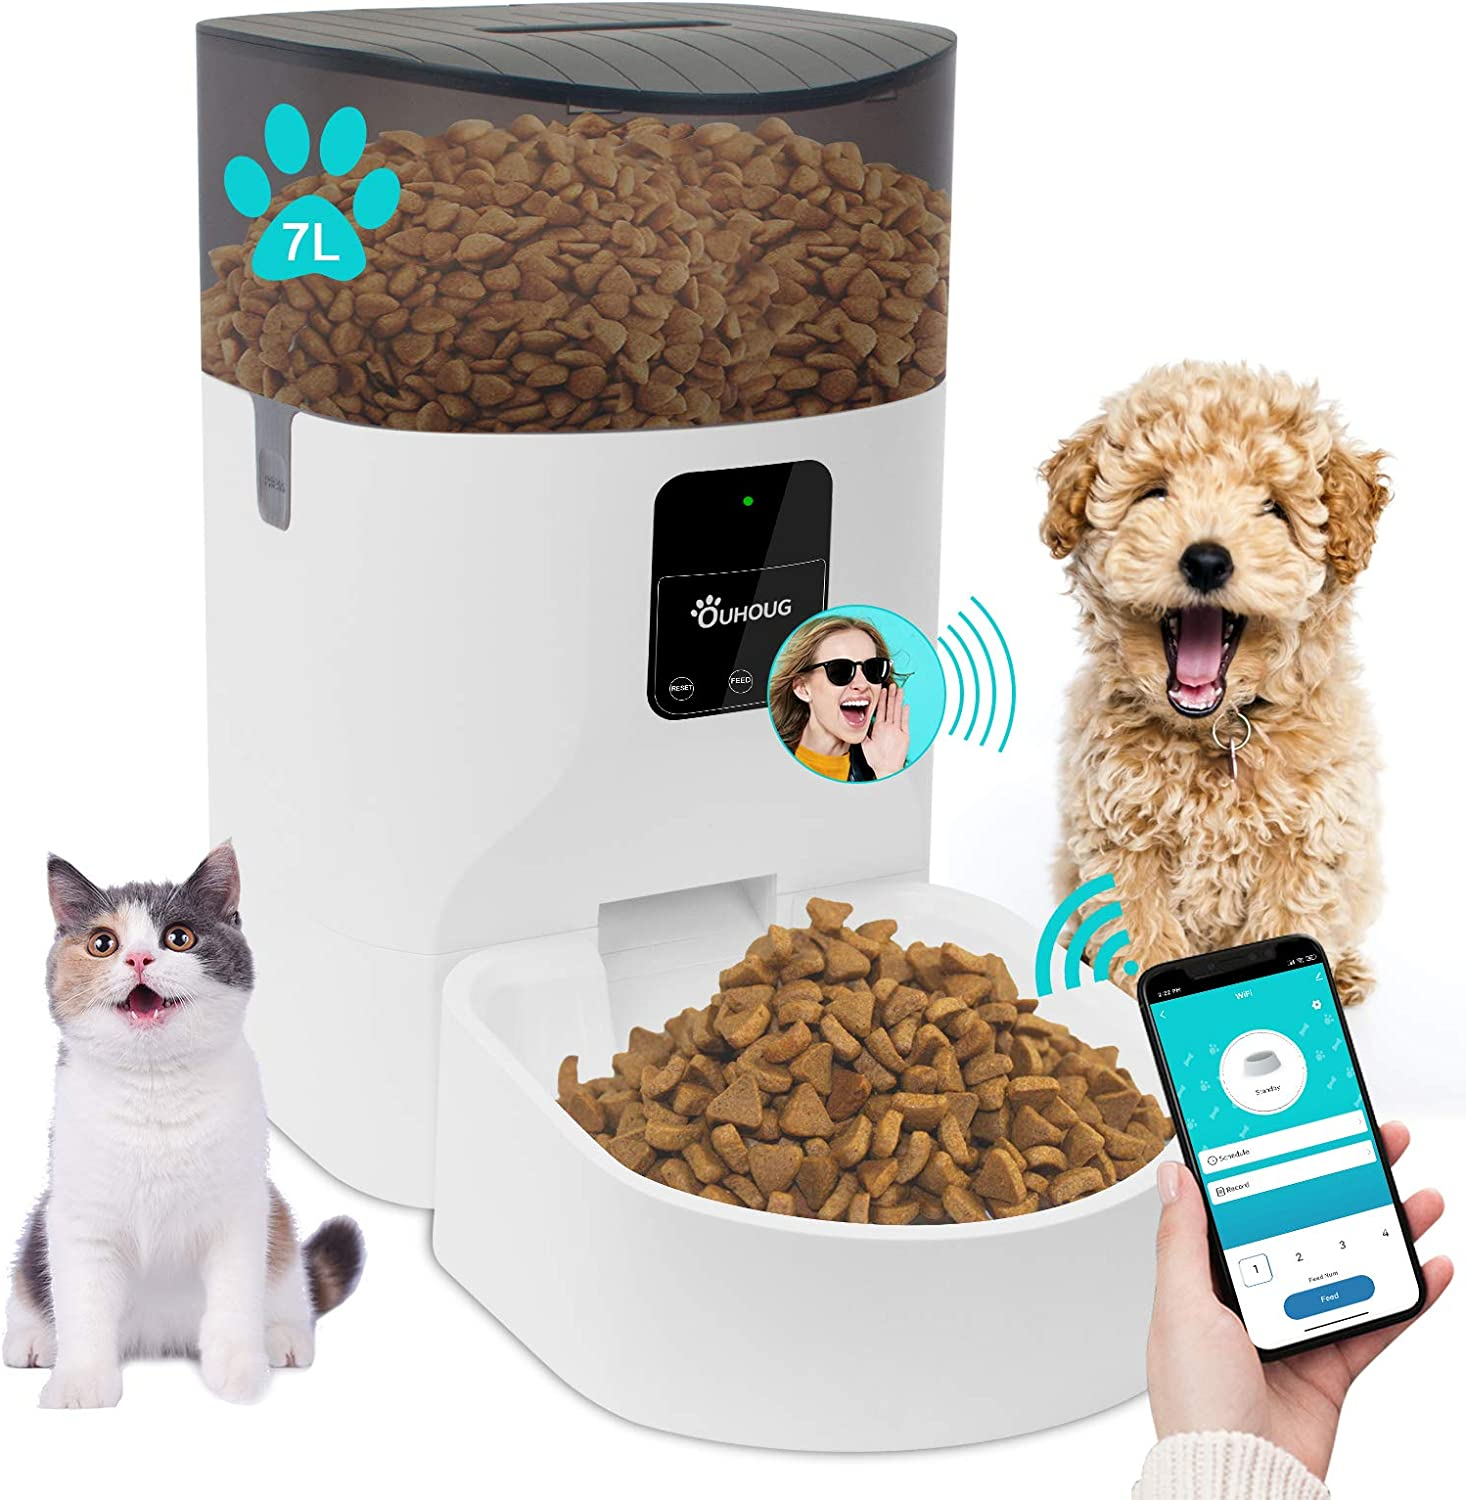 OUHOUG 7L Automatic Cat Feeder,Wi-Fi Enabled Smart Pet Feeder for Cats and Dogs,Programmable Portion Control 1-20 Meals per Day,Voice Recorder and Distribution Alarms